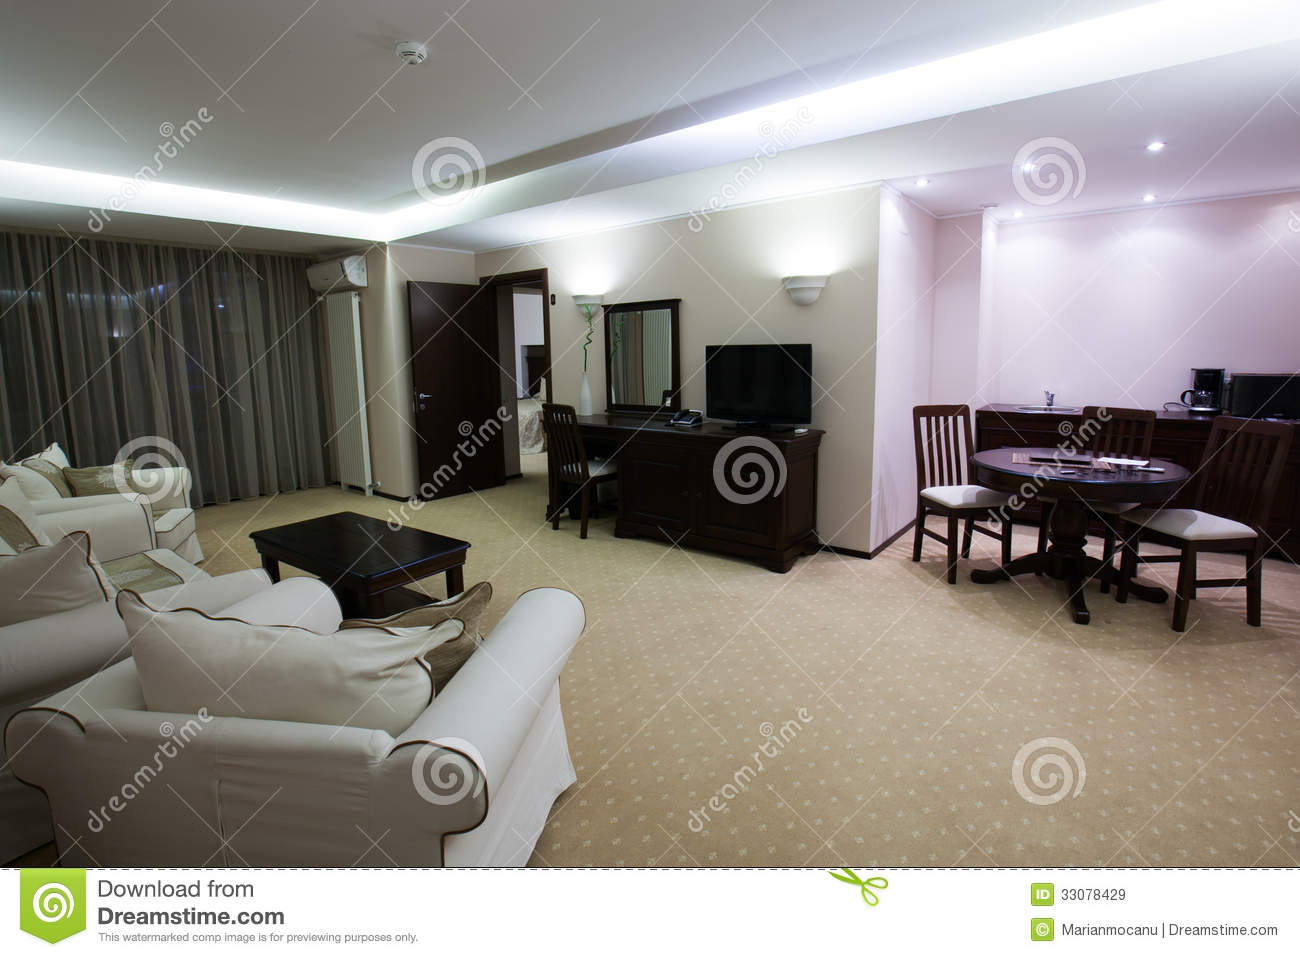 Luxury room royalty free stock images image 33078429 for Luxury hotel interior design